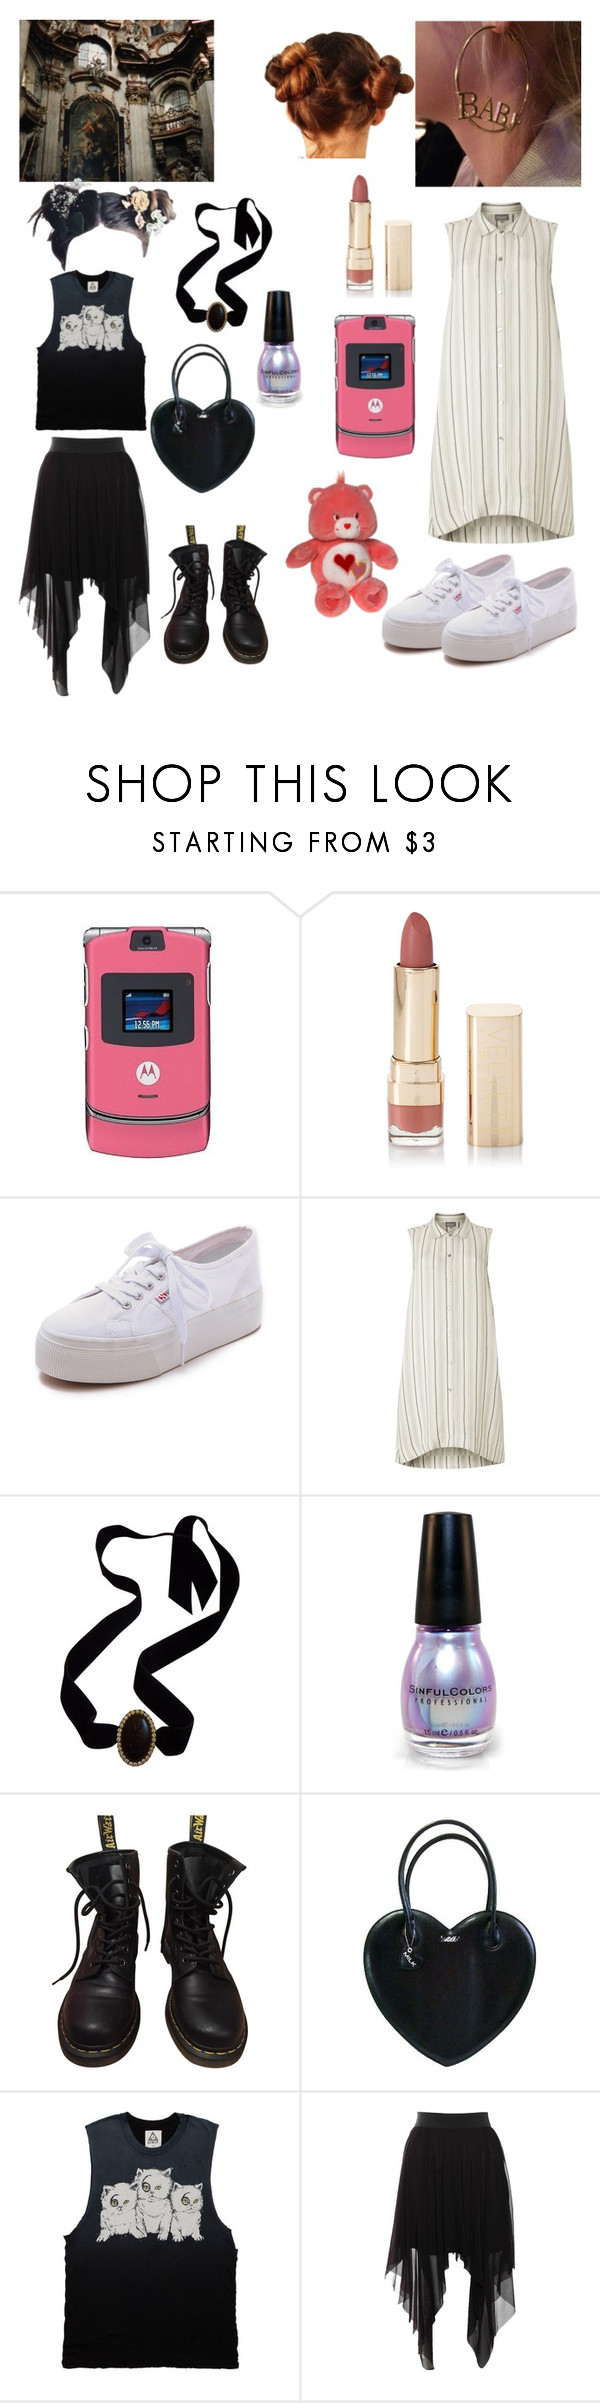 """""""Who are you witch or babydoll ?"""" by summersadness-446 ❤ liked on Polyvore featuring Motorola, Forever 21, Superga, Phase Eight, Yves Saint Laurent, Dr. Martens, Rare London and blackandwhite"""